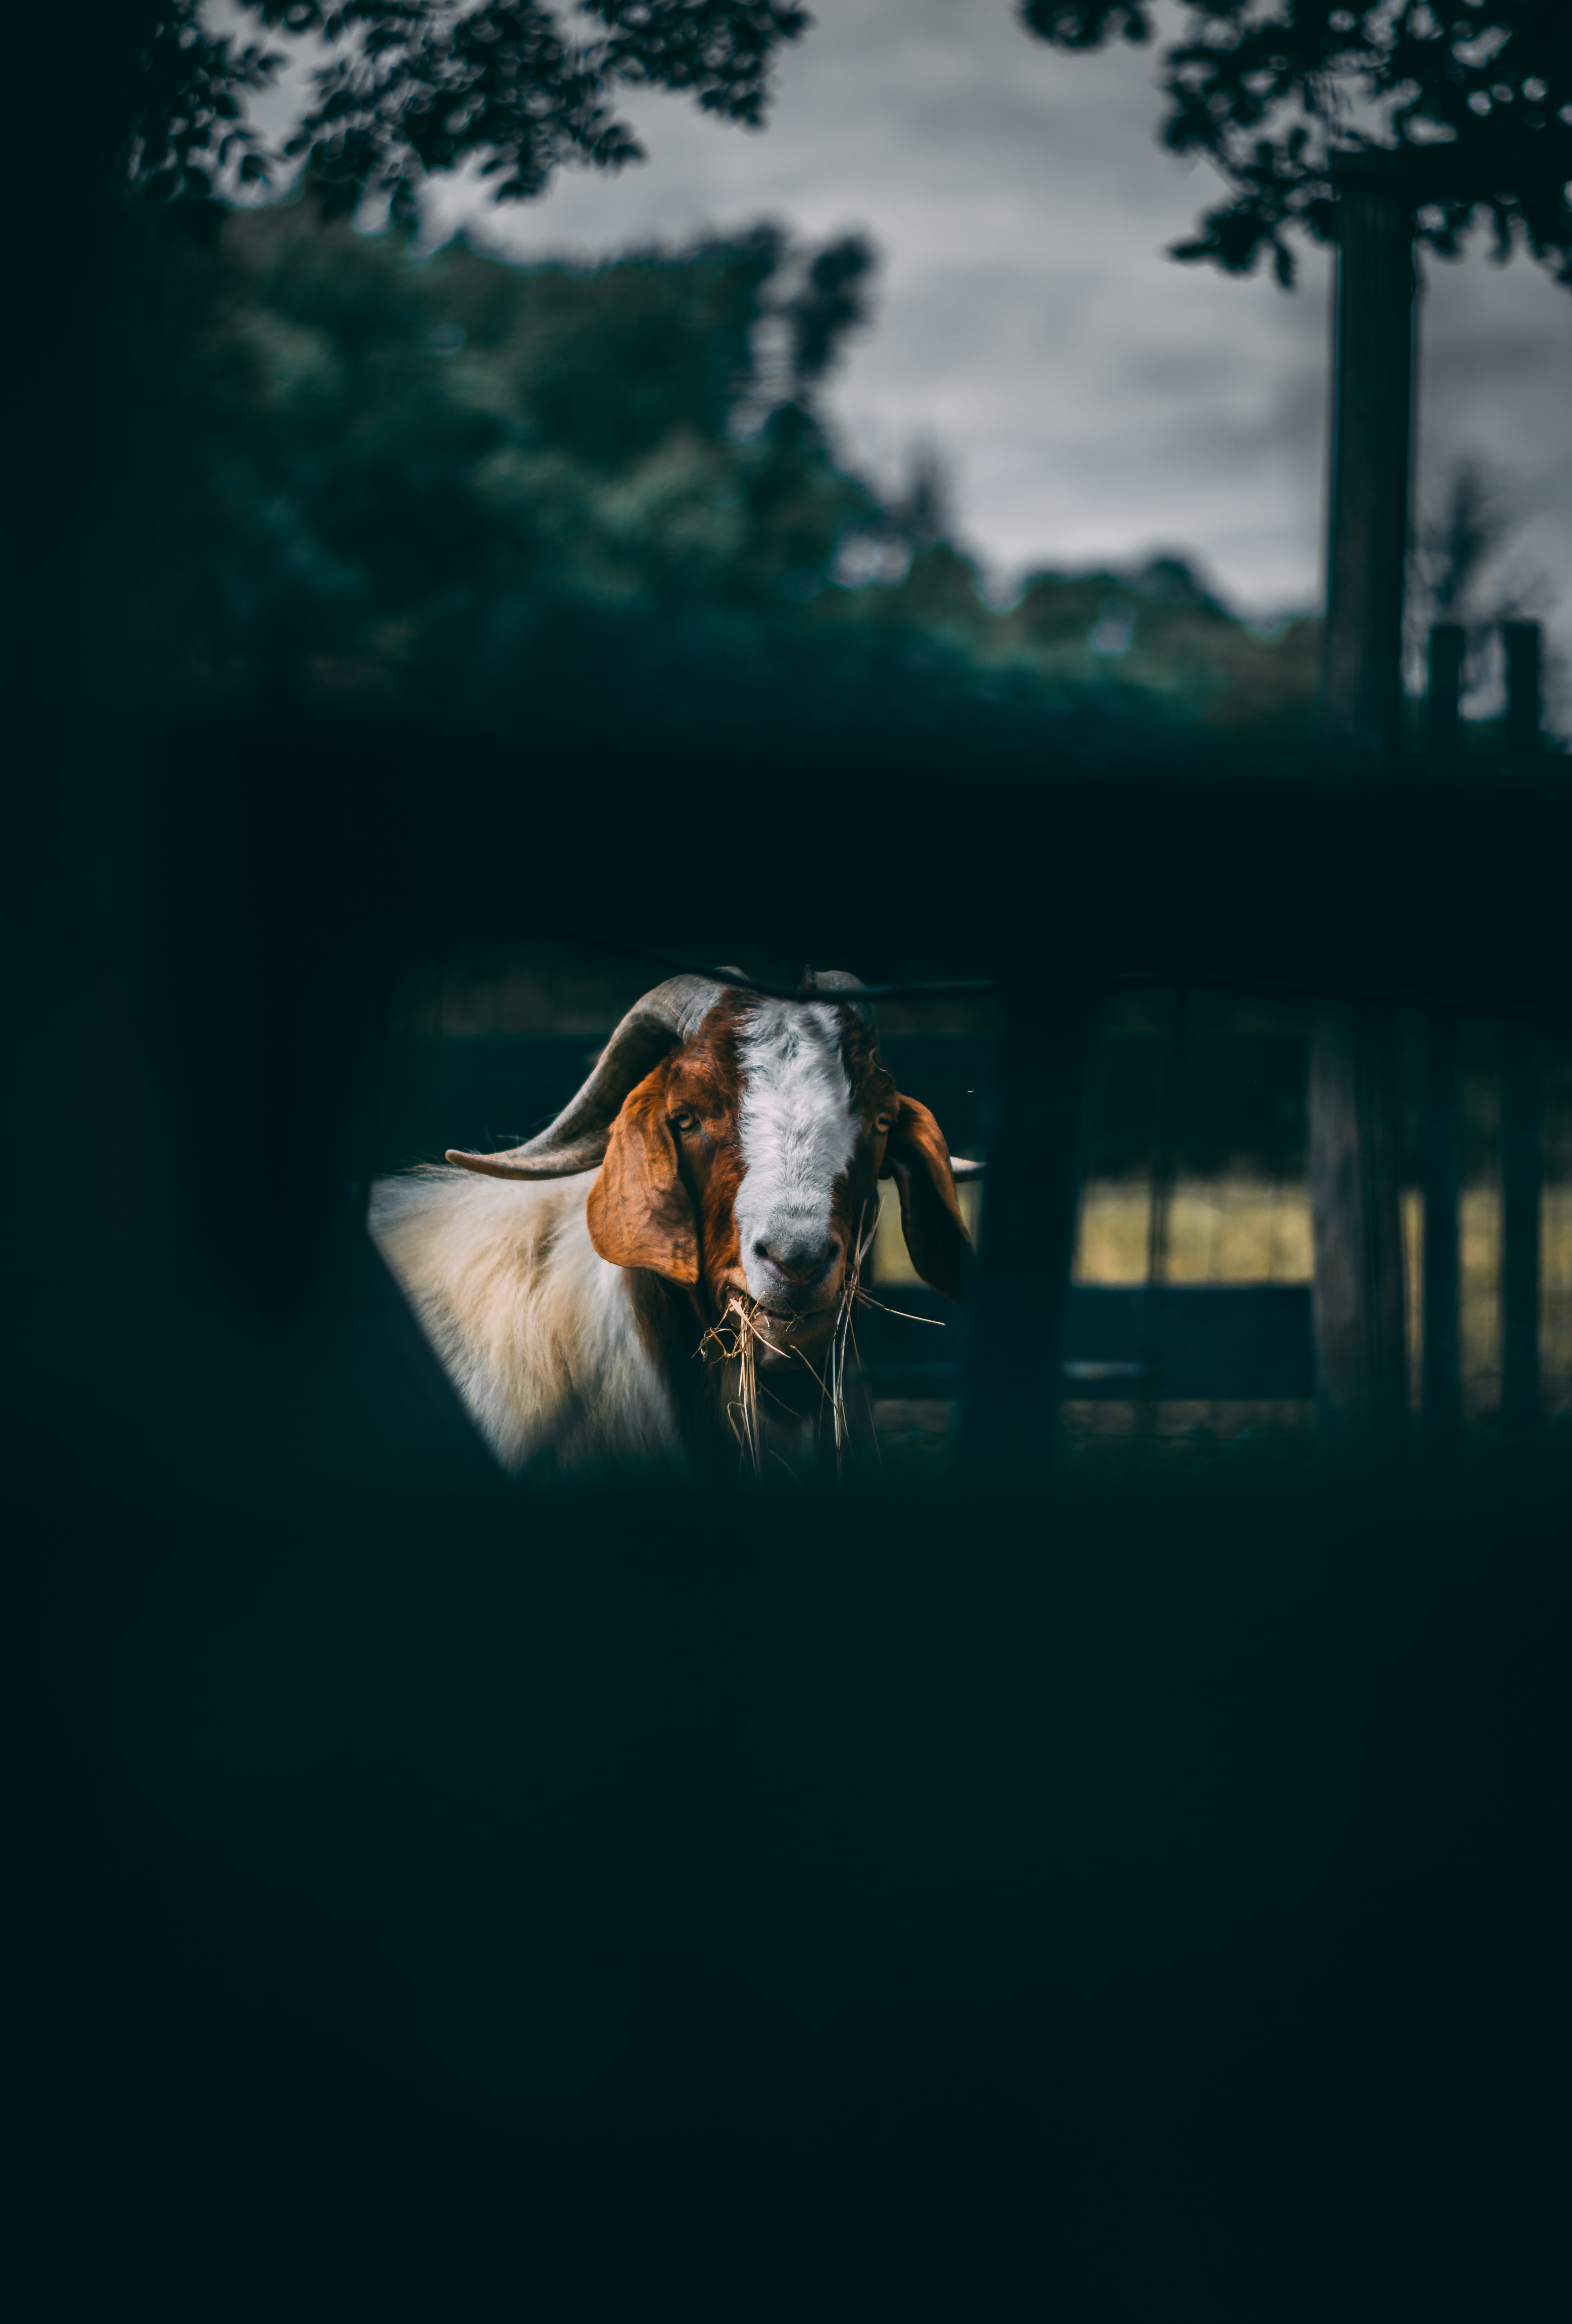 tilt shift lens photo of white and brown goat